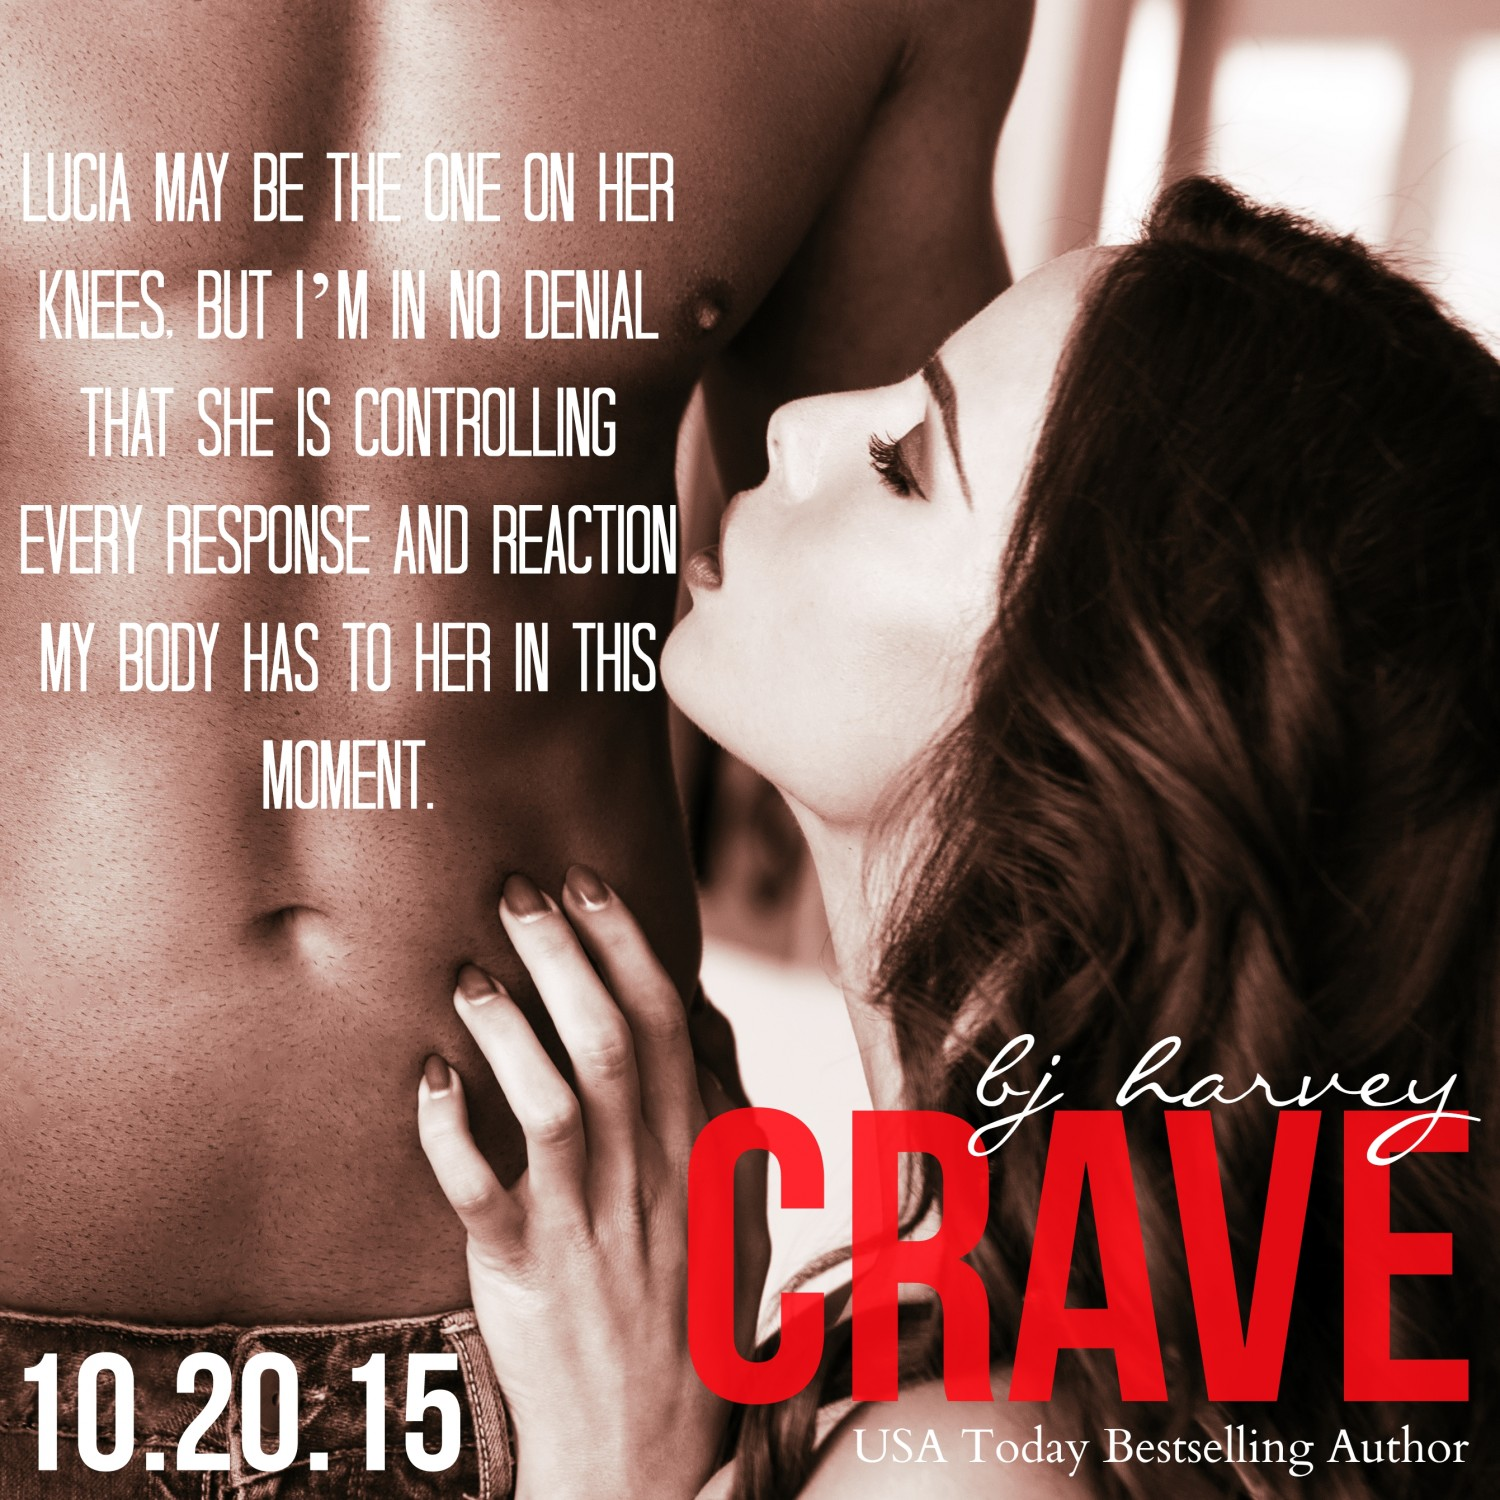 Crave by BJ Harvey_teaser 2